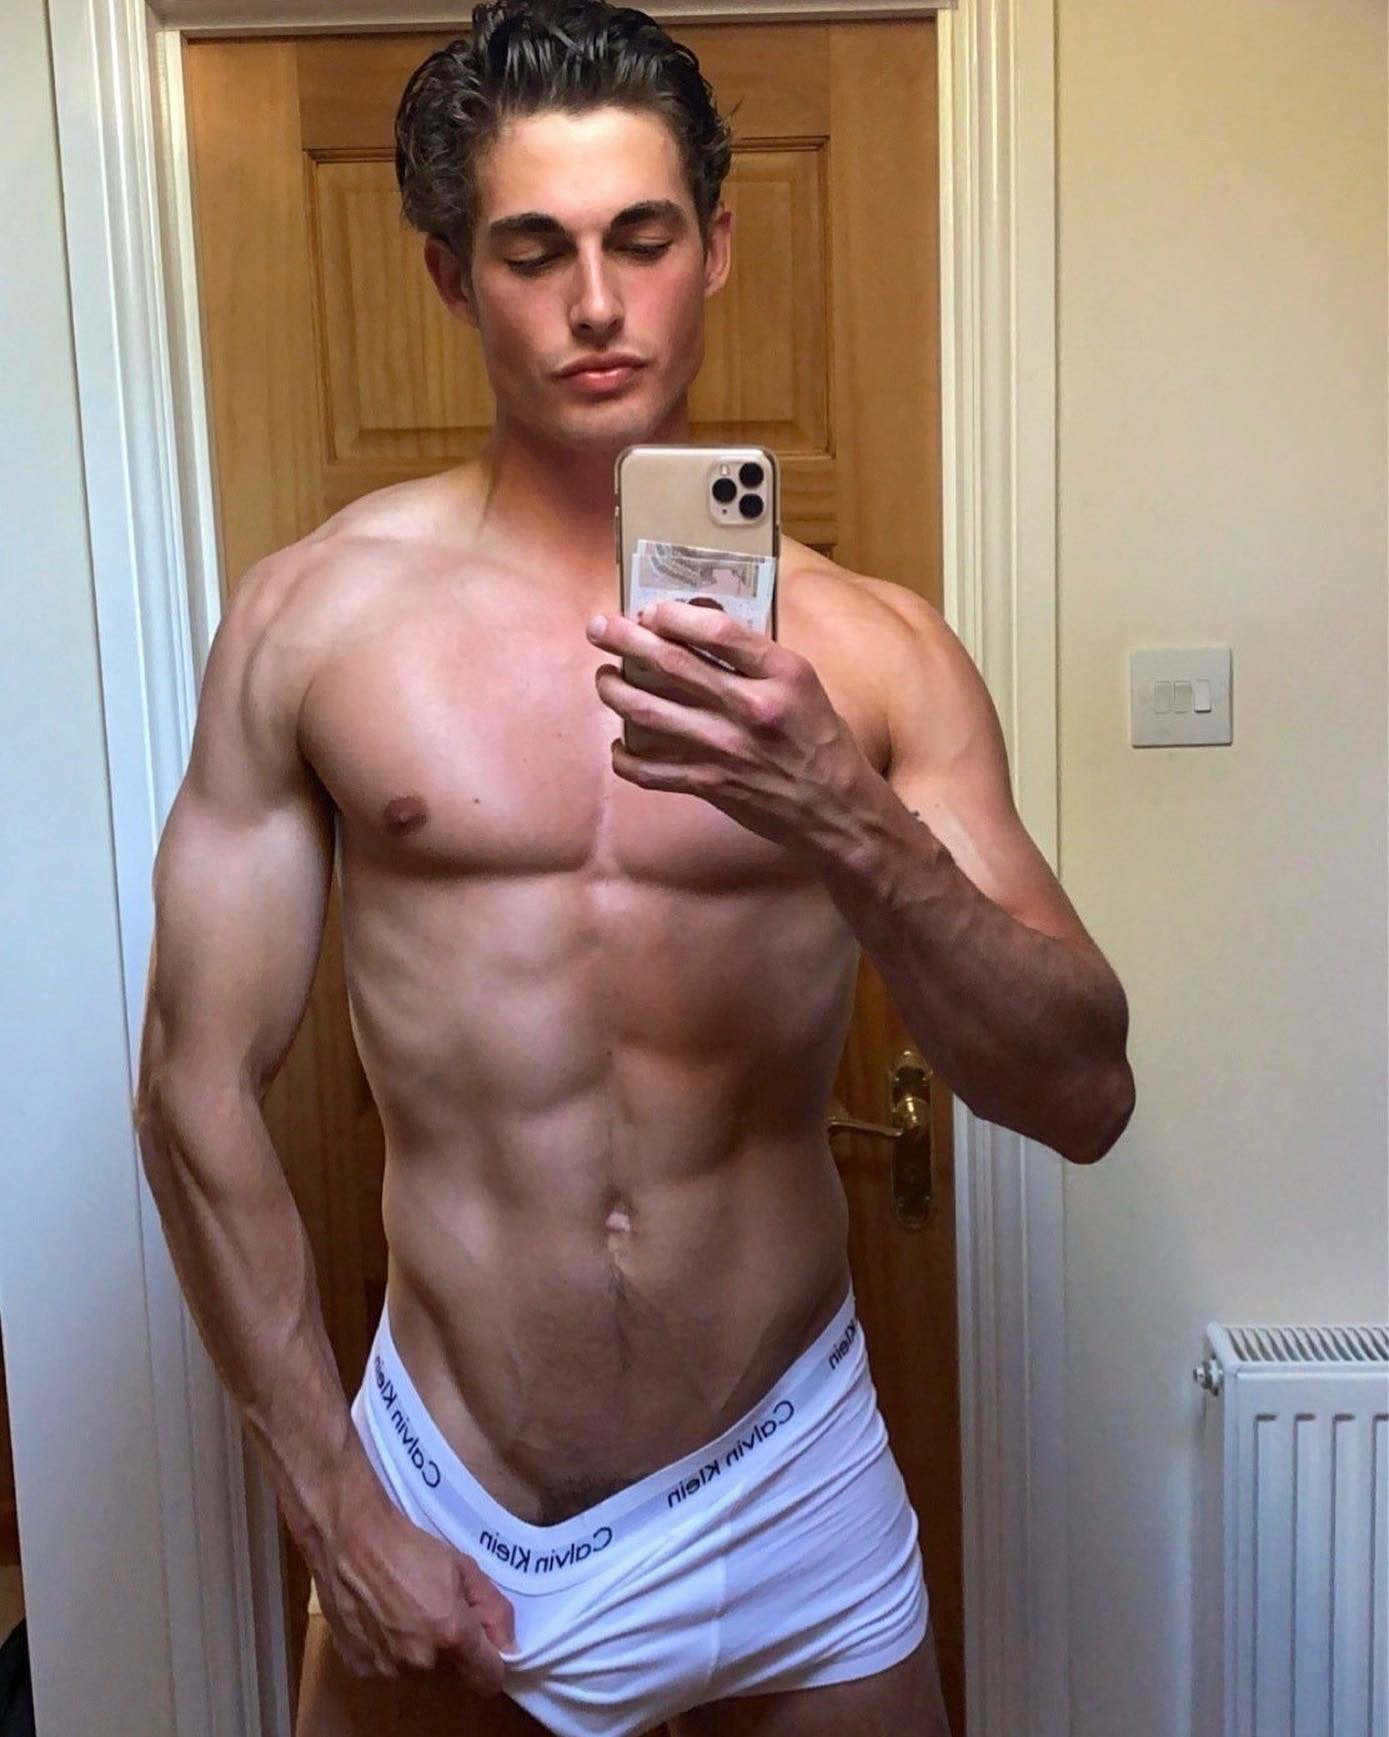 #beautiful #crossfit #fashion #fitlife #fitmotivation #fitnesslife #guy #instagood #instaselfie #lifestyle #love #men #mensfashion #menstyle #menswear #mirrorselfie #muscular #photography #photoofthed